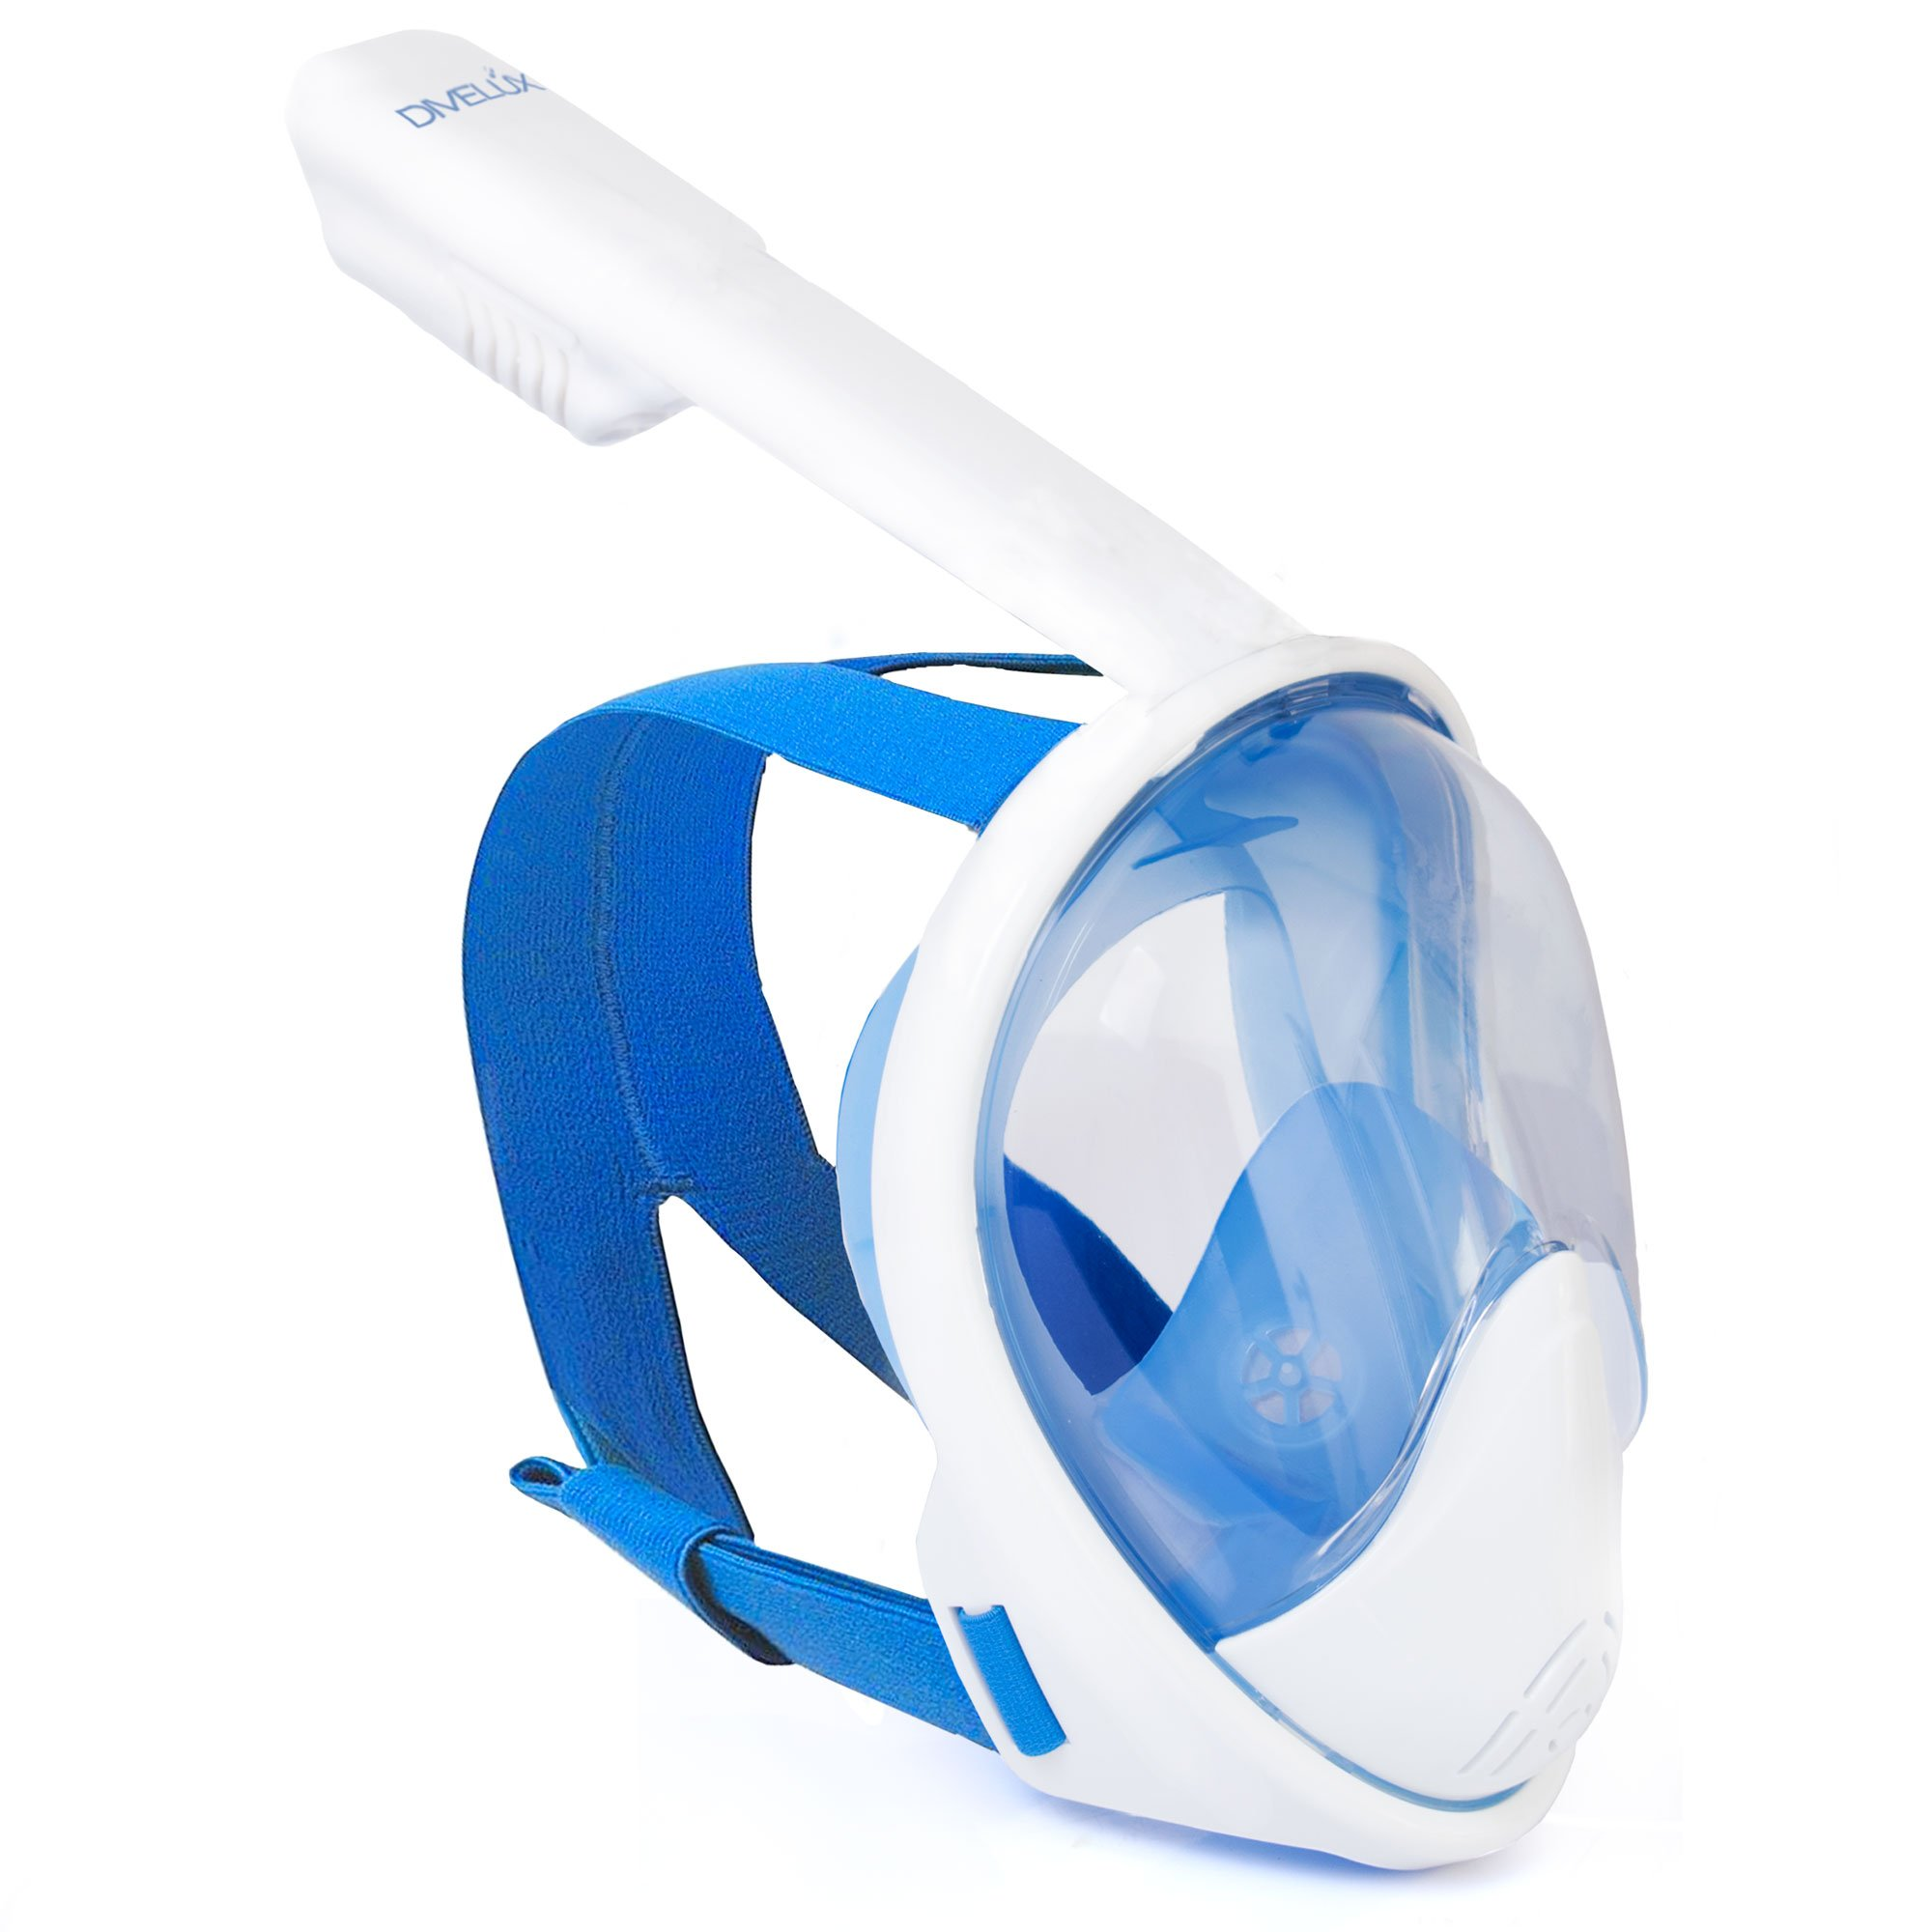 DIVELUX Snorkel Mask - Original Full Face Snorkeling and Diving Mask with 180° Panoramic Viewing - Longer Ventilation Pipe, Watertight, Anti Fog & Anti Leak Technology, (Blue, S/M)